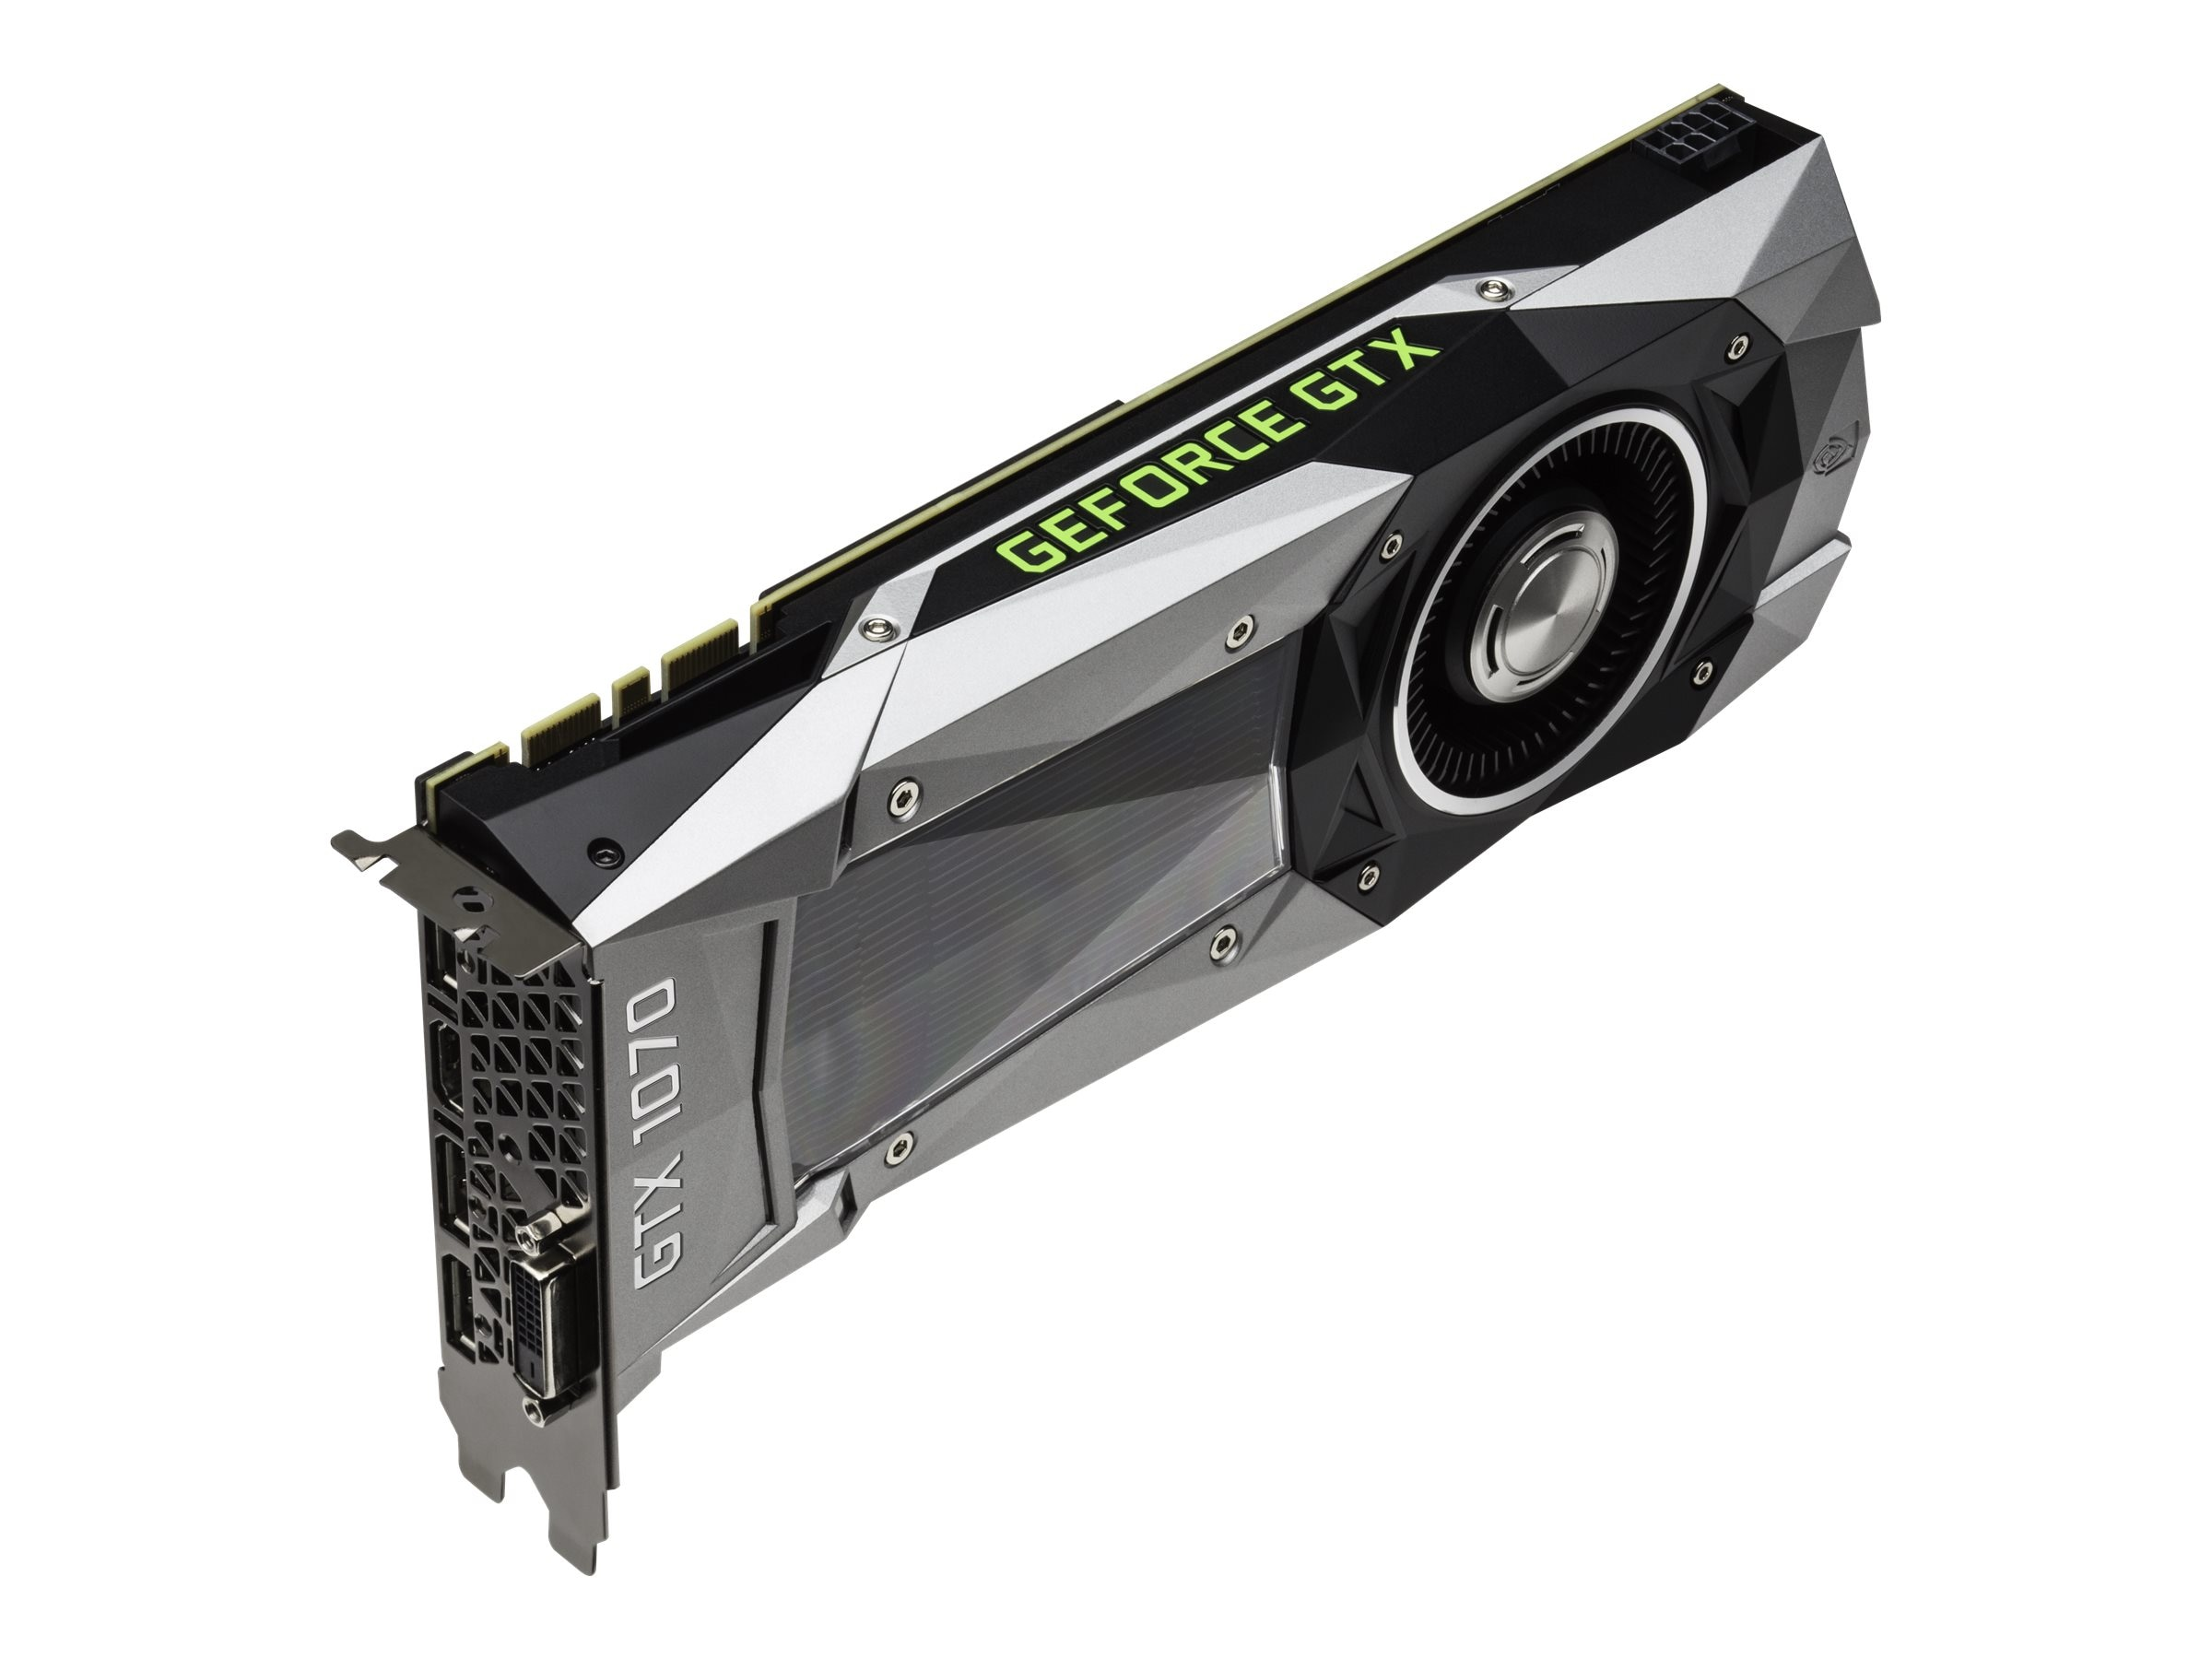 Microstar GeForce GTX 1070 PCIe 3.0 Founders Graphics Card, 8GB GDDR5, GTX 1070 FOUNDERS EDITION